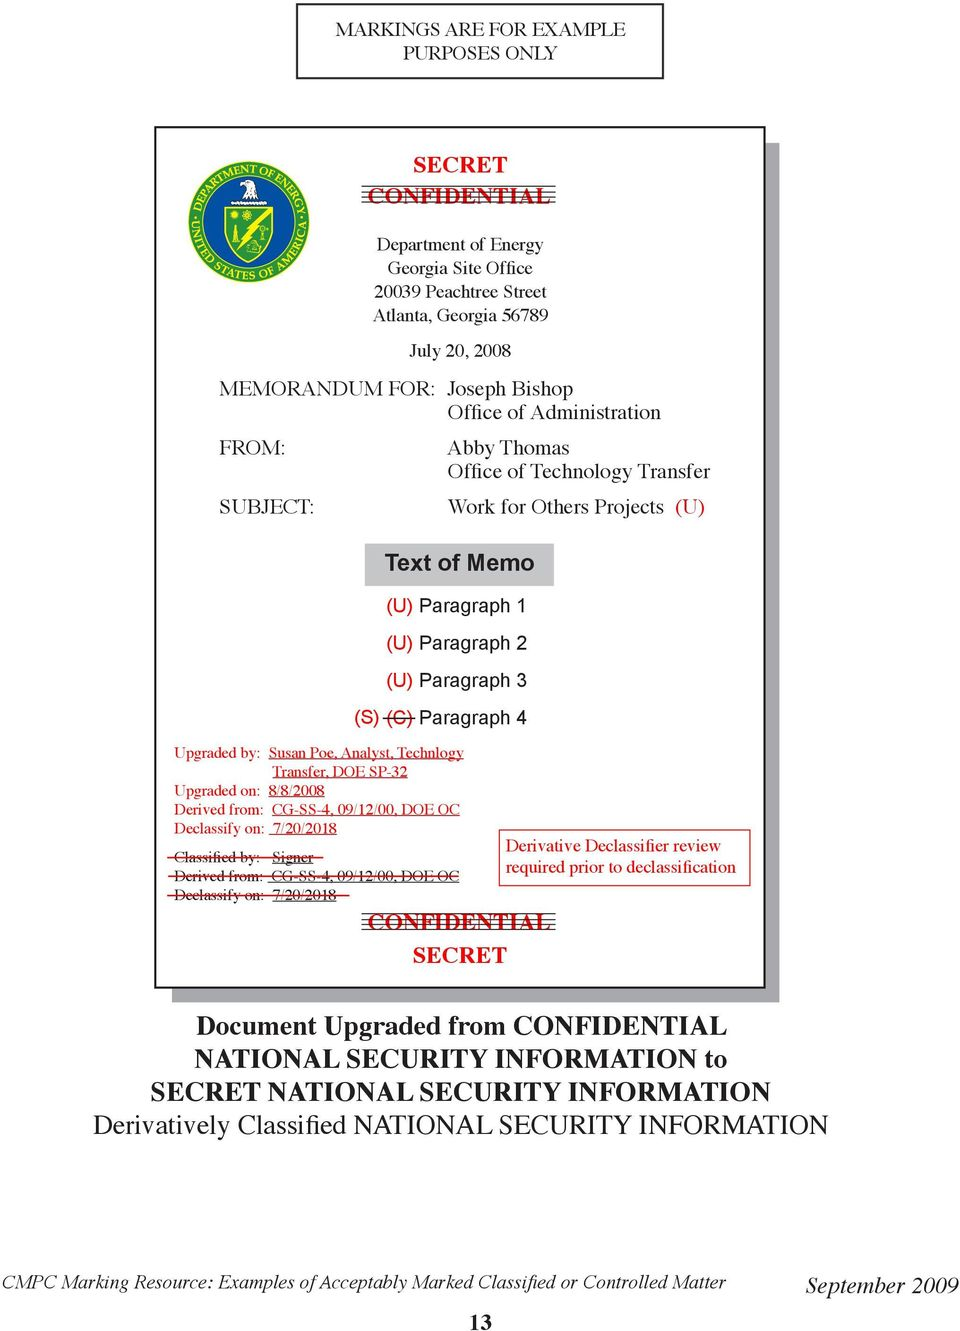 SP-32 Upgraded on: 8/8/2008 Derived from: CG-SS-4, 09/12/00, DOE OC Declassify on: 7/20/2018 Classified by: Signer Derived from: CG-SS-4, 09/12/00, DOE OC Declassify on: 7/20/2018 CONFIDENTIAL